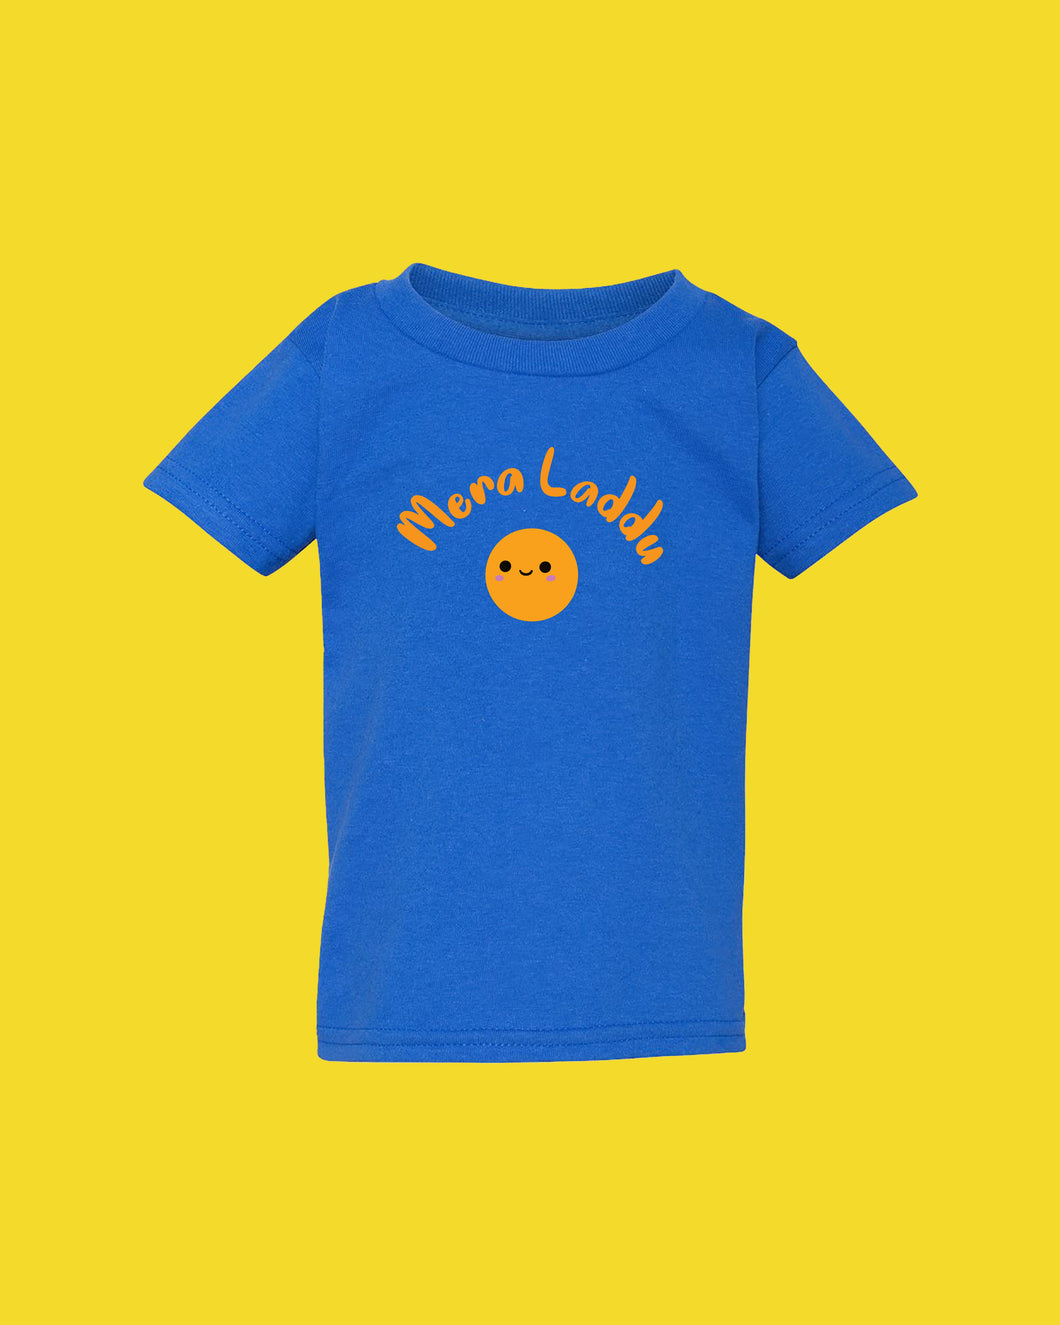 Toddler Mera Laddu Royal Blue